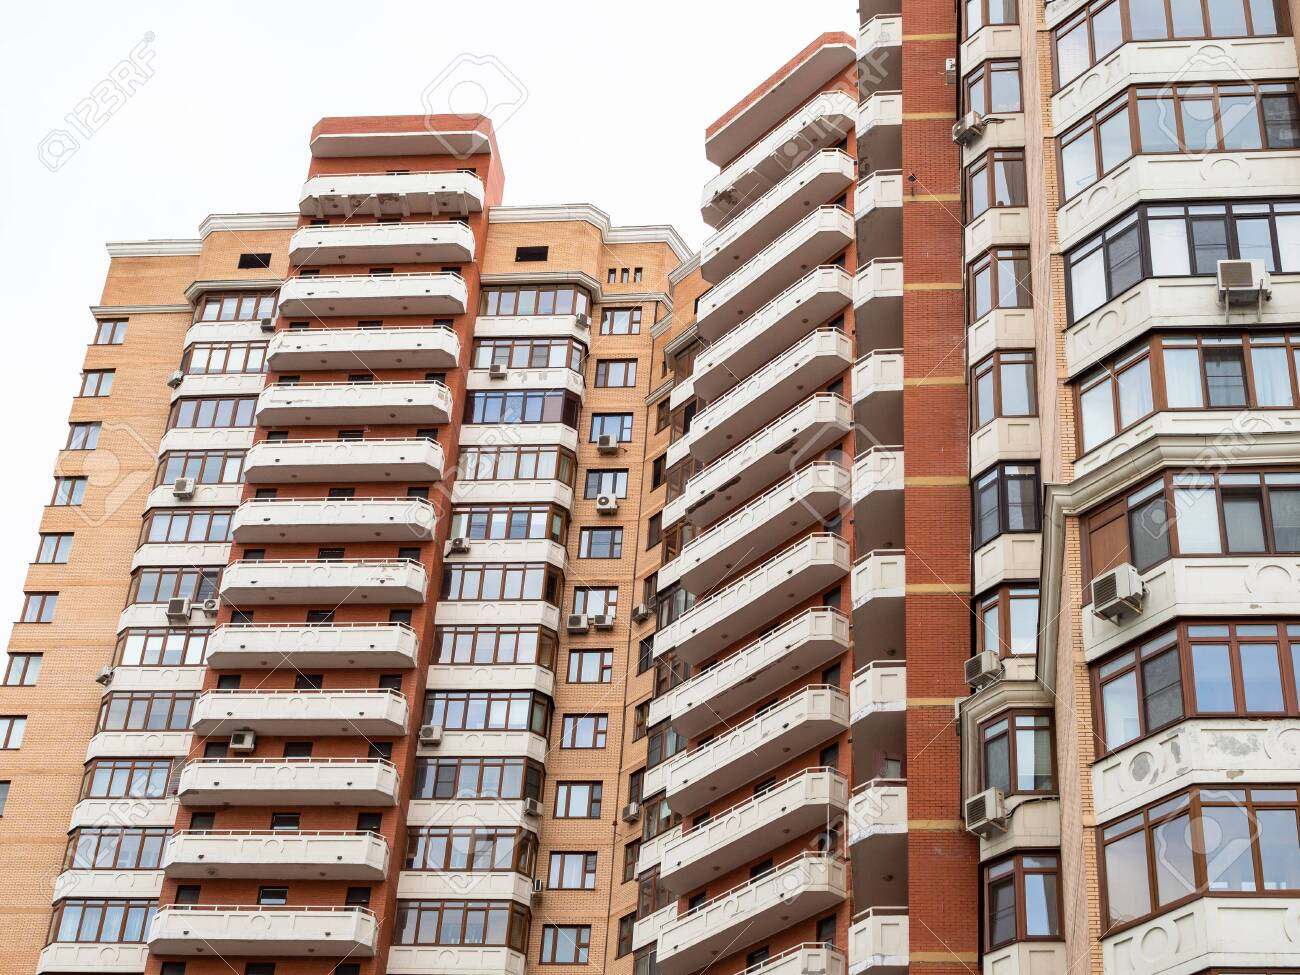 urban multi-storey residential building in Moscow city - 129017881